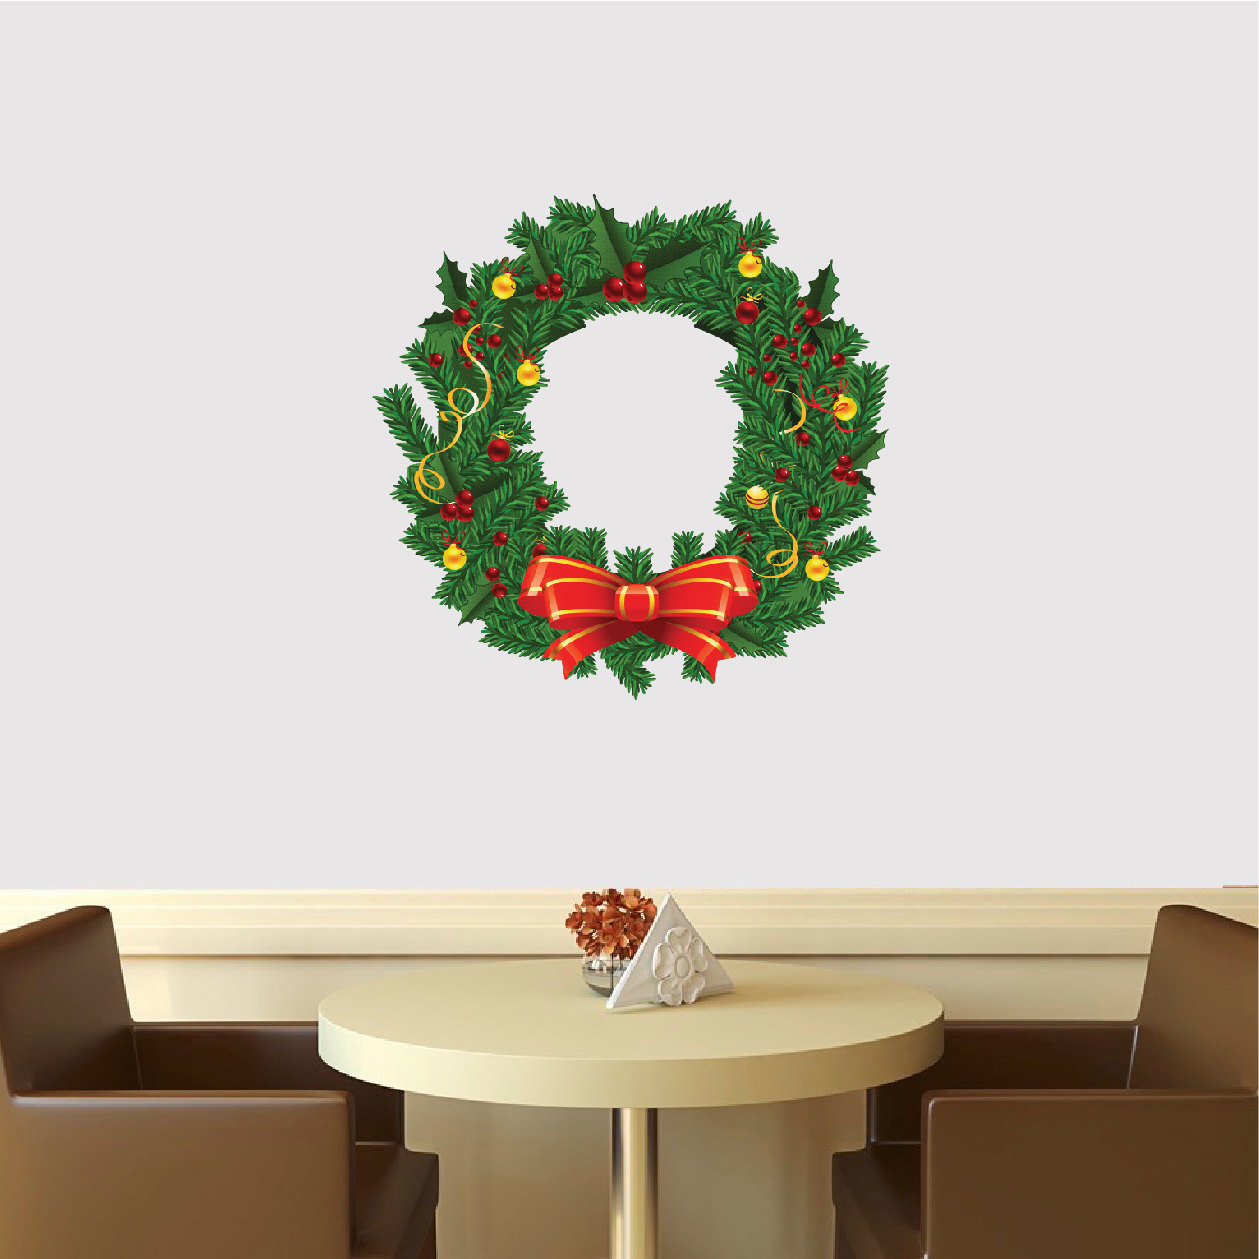 Christmas Wreath Wall Decal Mural Christmas Wreath Wall